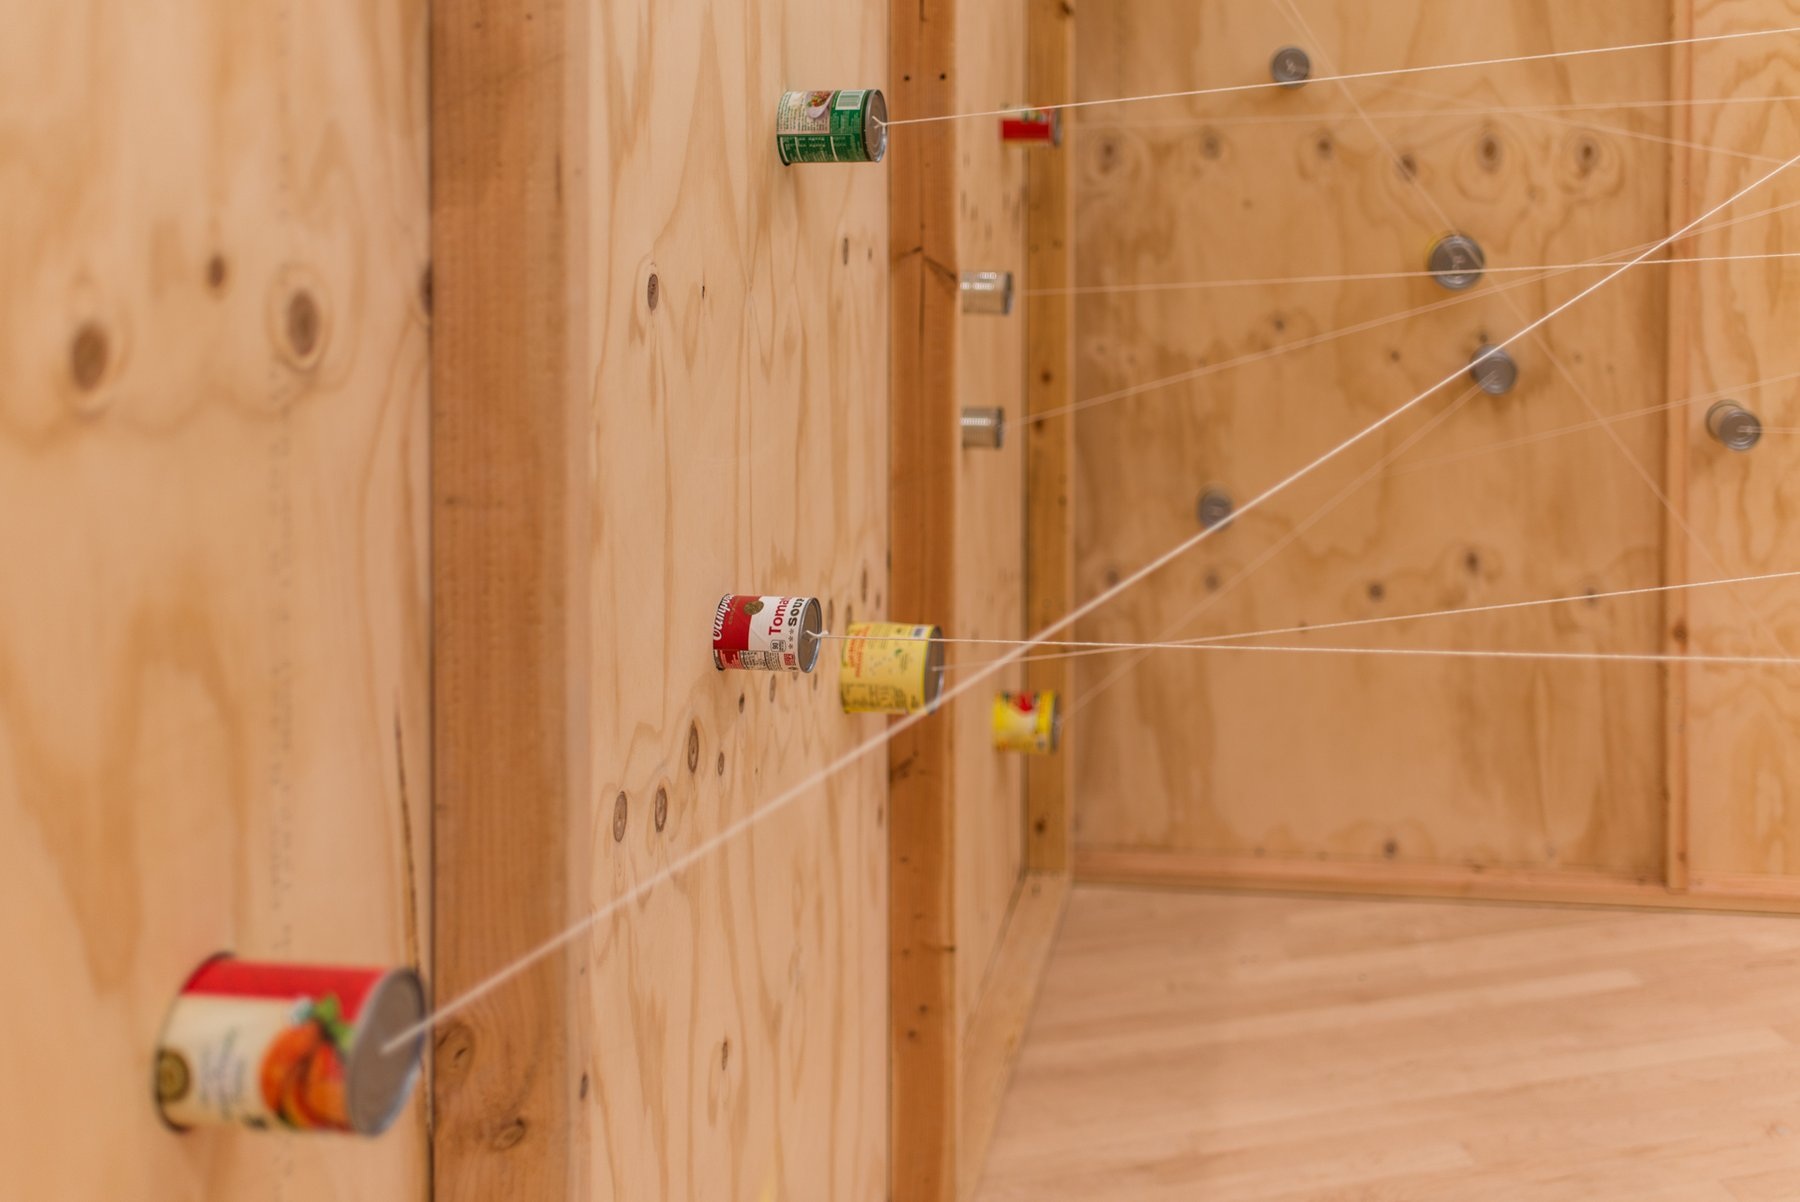 A cubic structure strewn with strings, Pica, Soundtracks